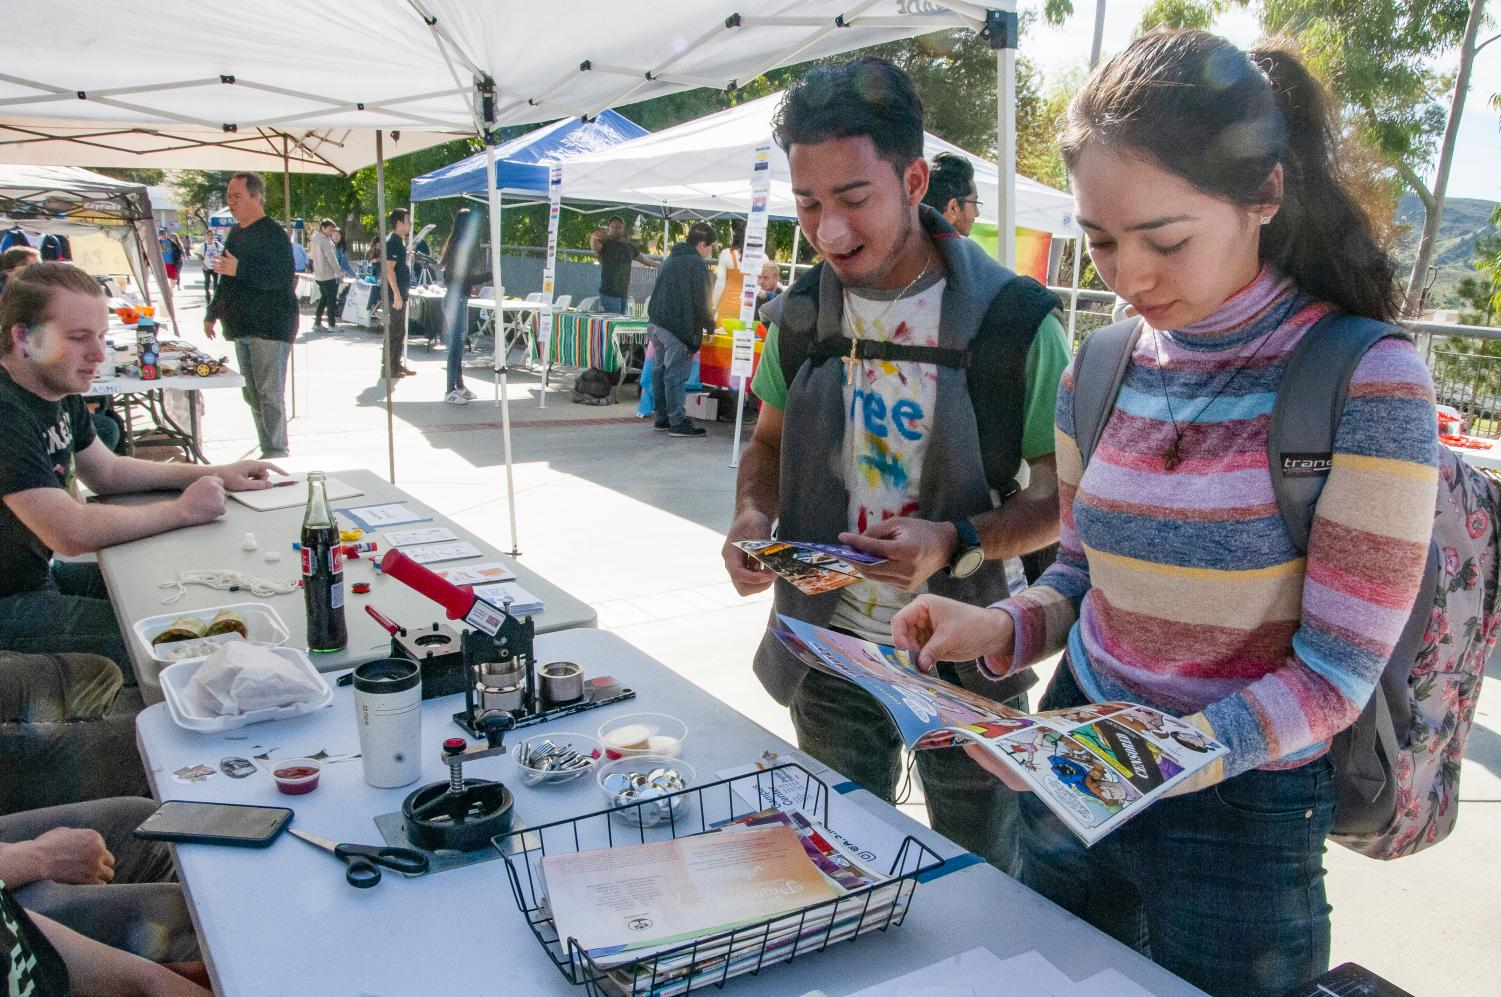 Carlos Hernandez, left, and Carmen Fregoso talk with representatives of the Moorpark College MakerSpace booth at Club Rush on Tuesday Jan. 28. Hernandez and Fregoso were making complimentary custom pins with materials set out by the club. Photo credit: Morgan Ellis